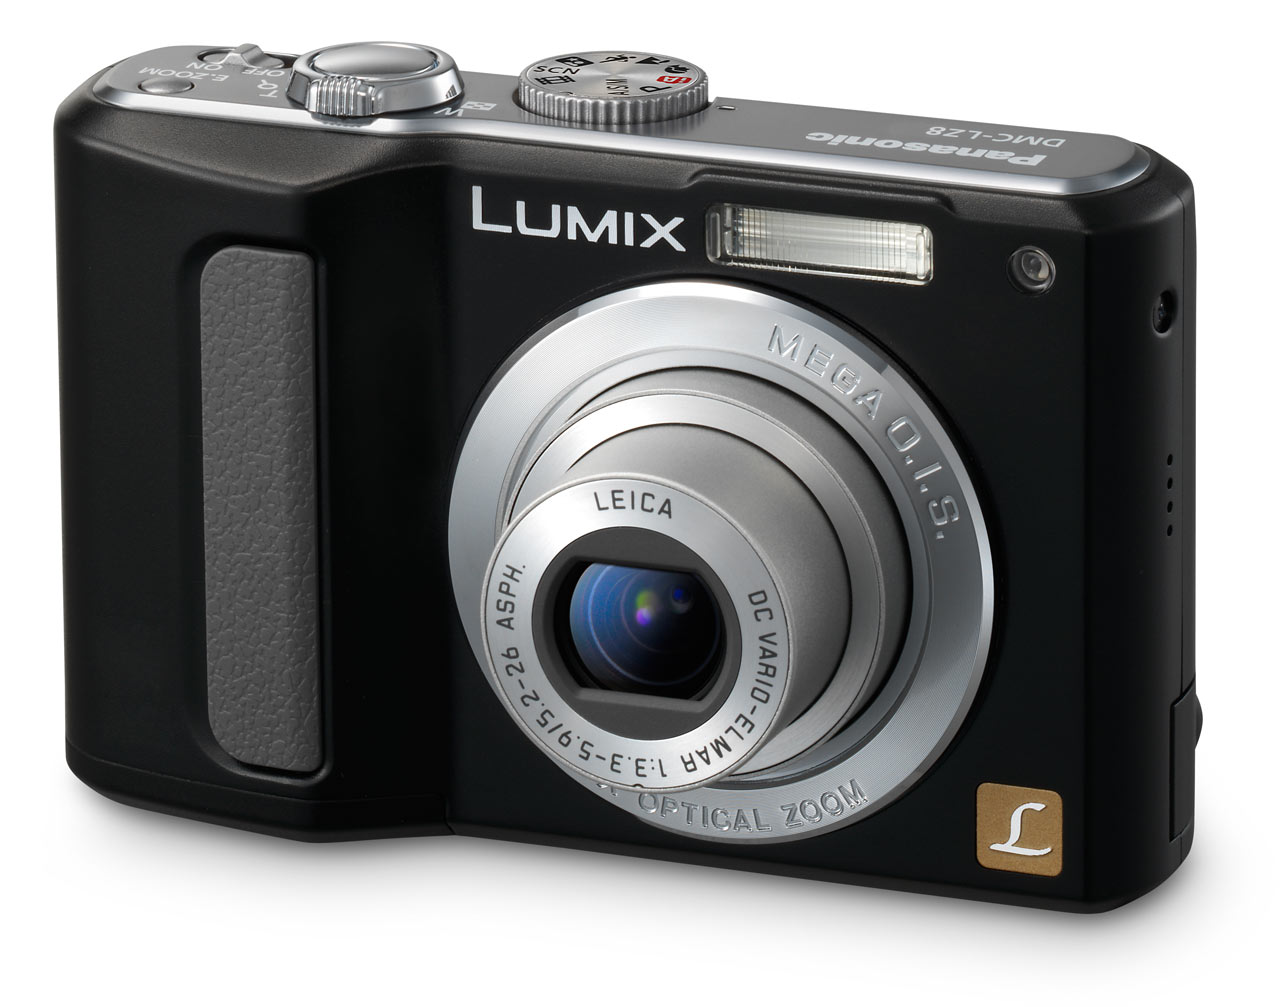 panasonic lumix dmc lz8 lz10 digital photography review rh dpreview com panasonic lumix dmc-zs10 instruction manual panasonic lumix dmc-zs10 instruction manual